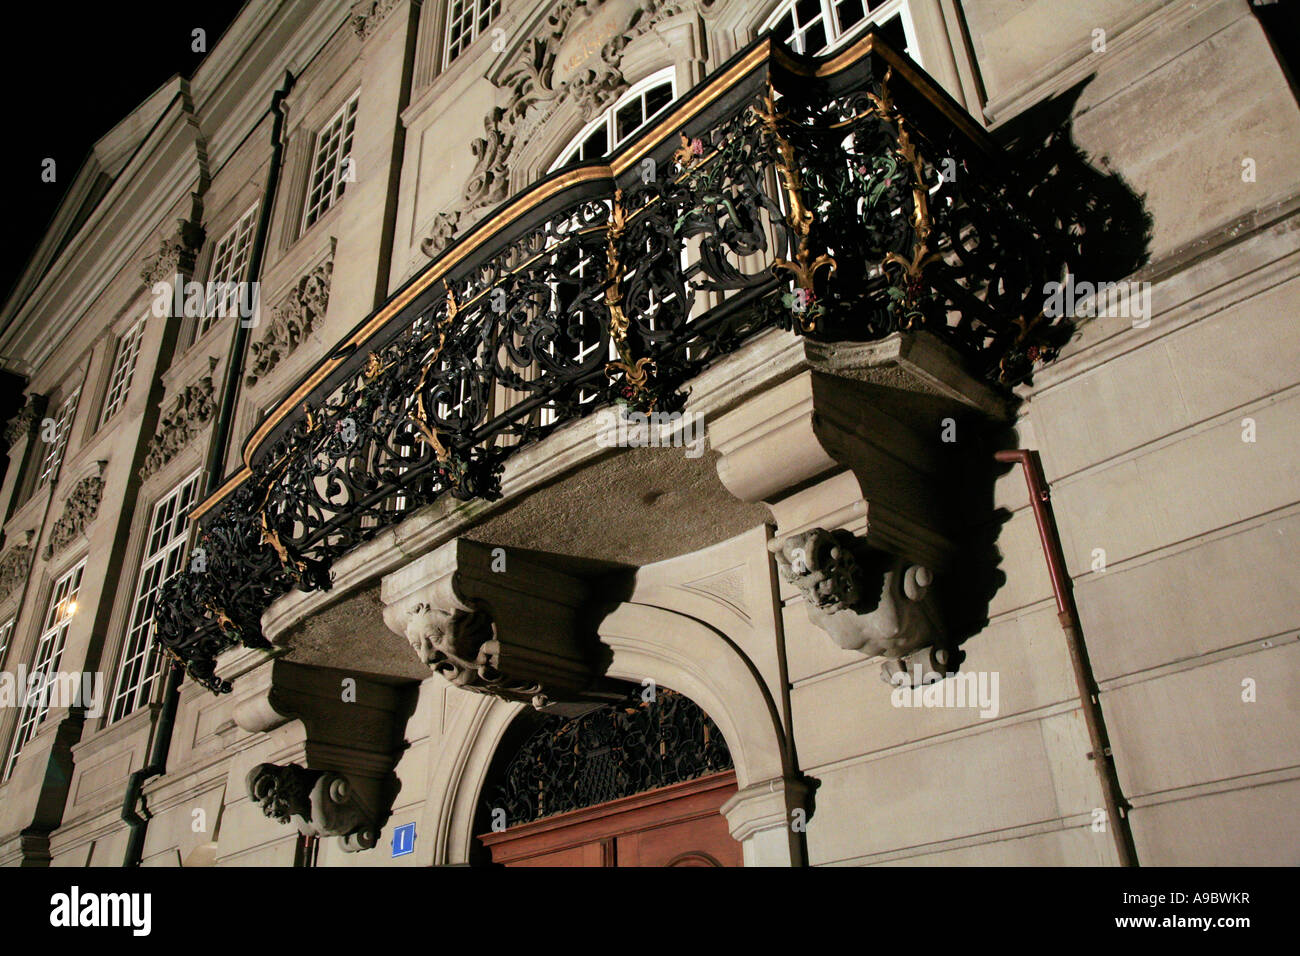 Balcony in Zurich Switzerland photographed at night - Stock Image